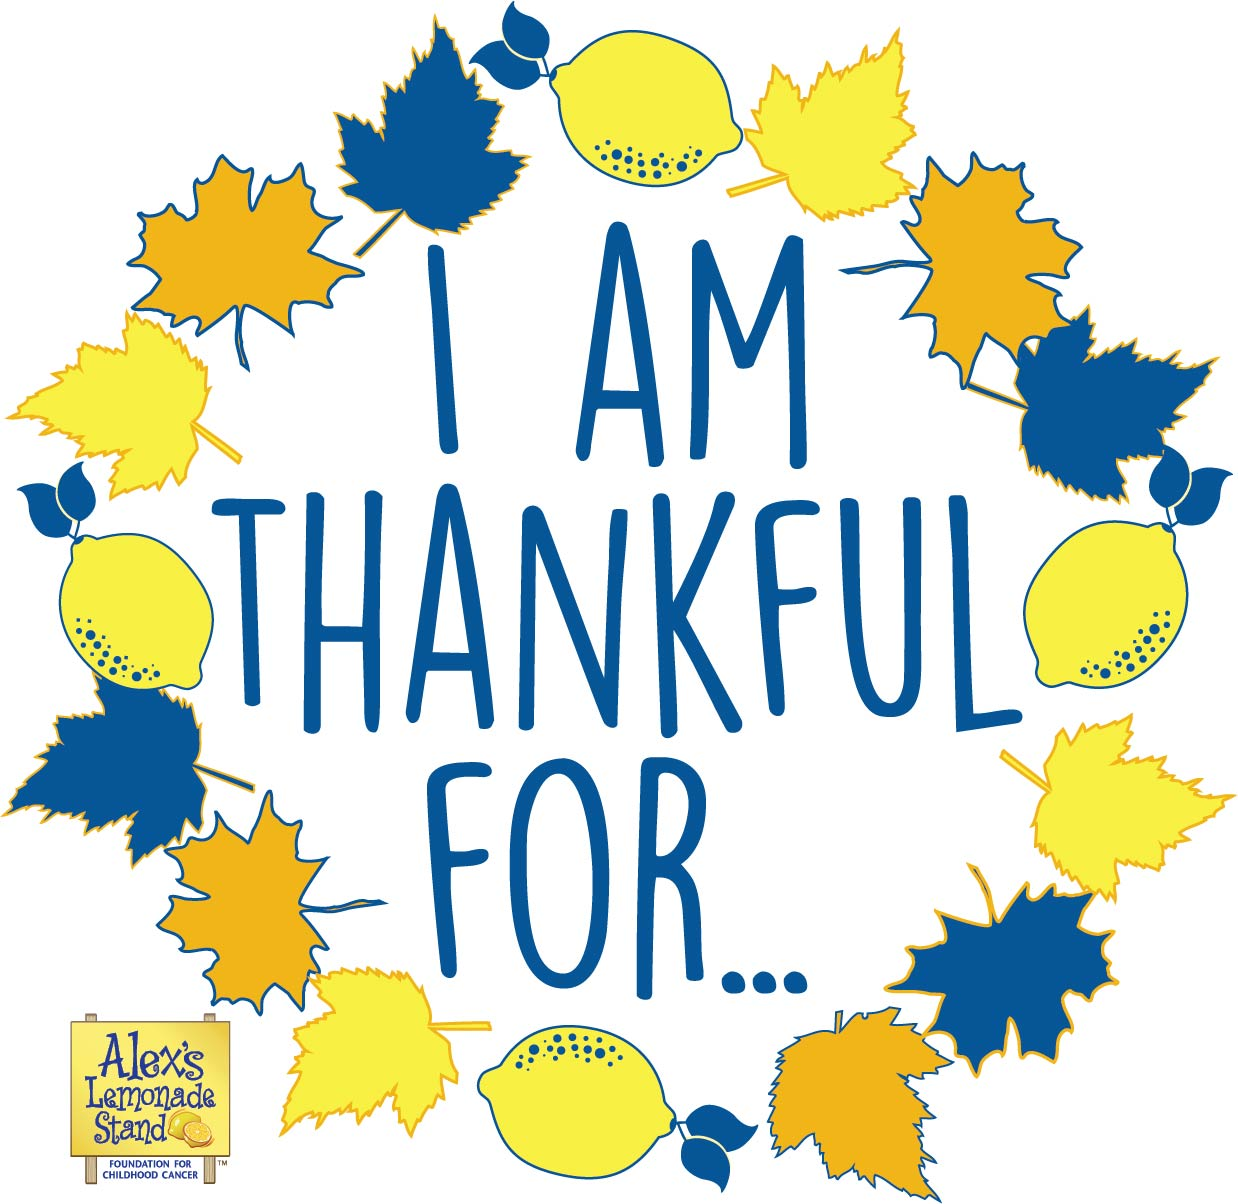 ALSF is thankful for the amazing supporters that help us fund childhood cancer research. Share what you are thankful for.